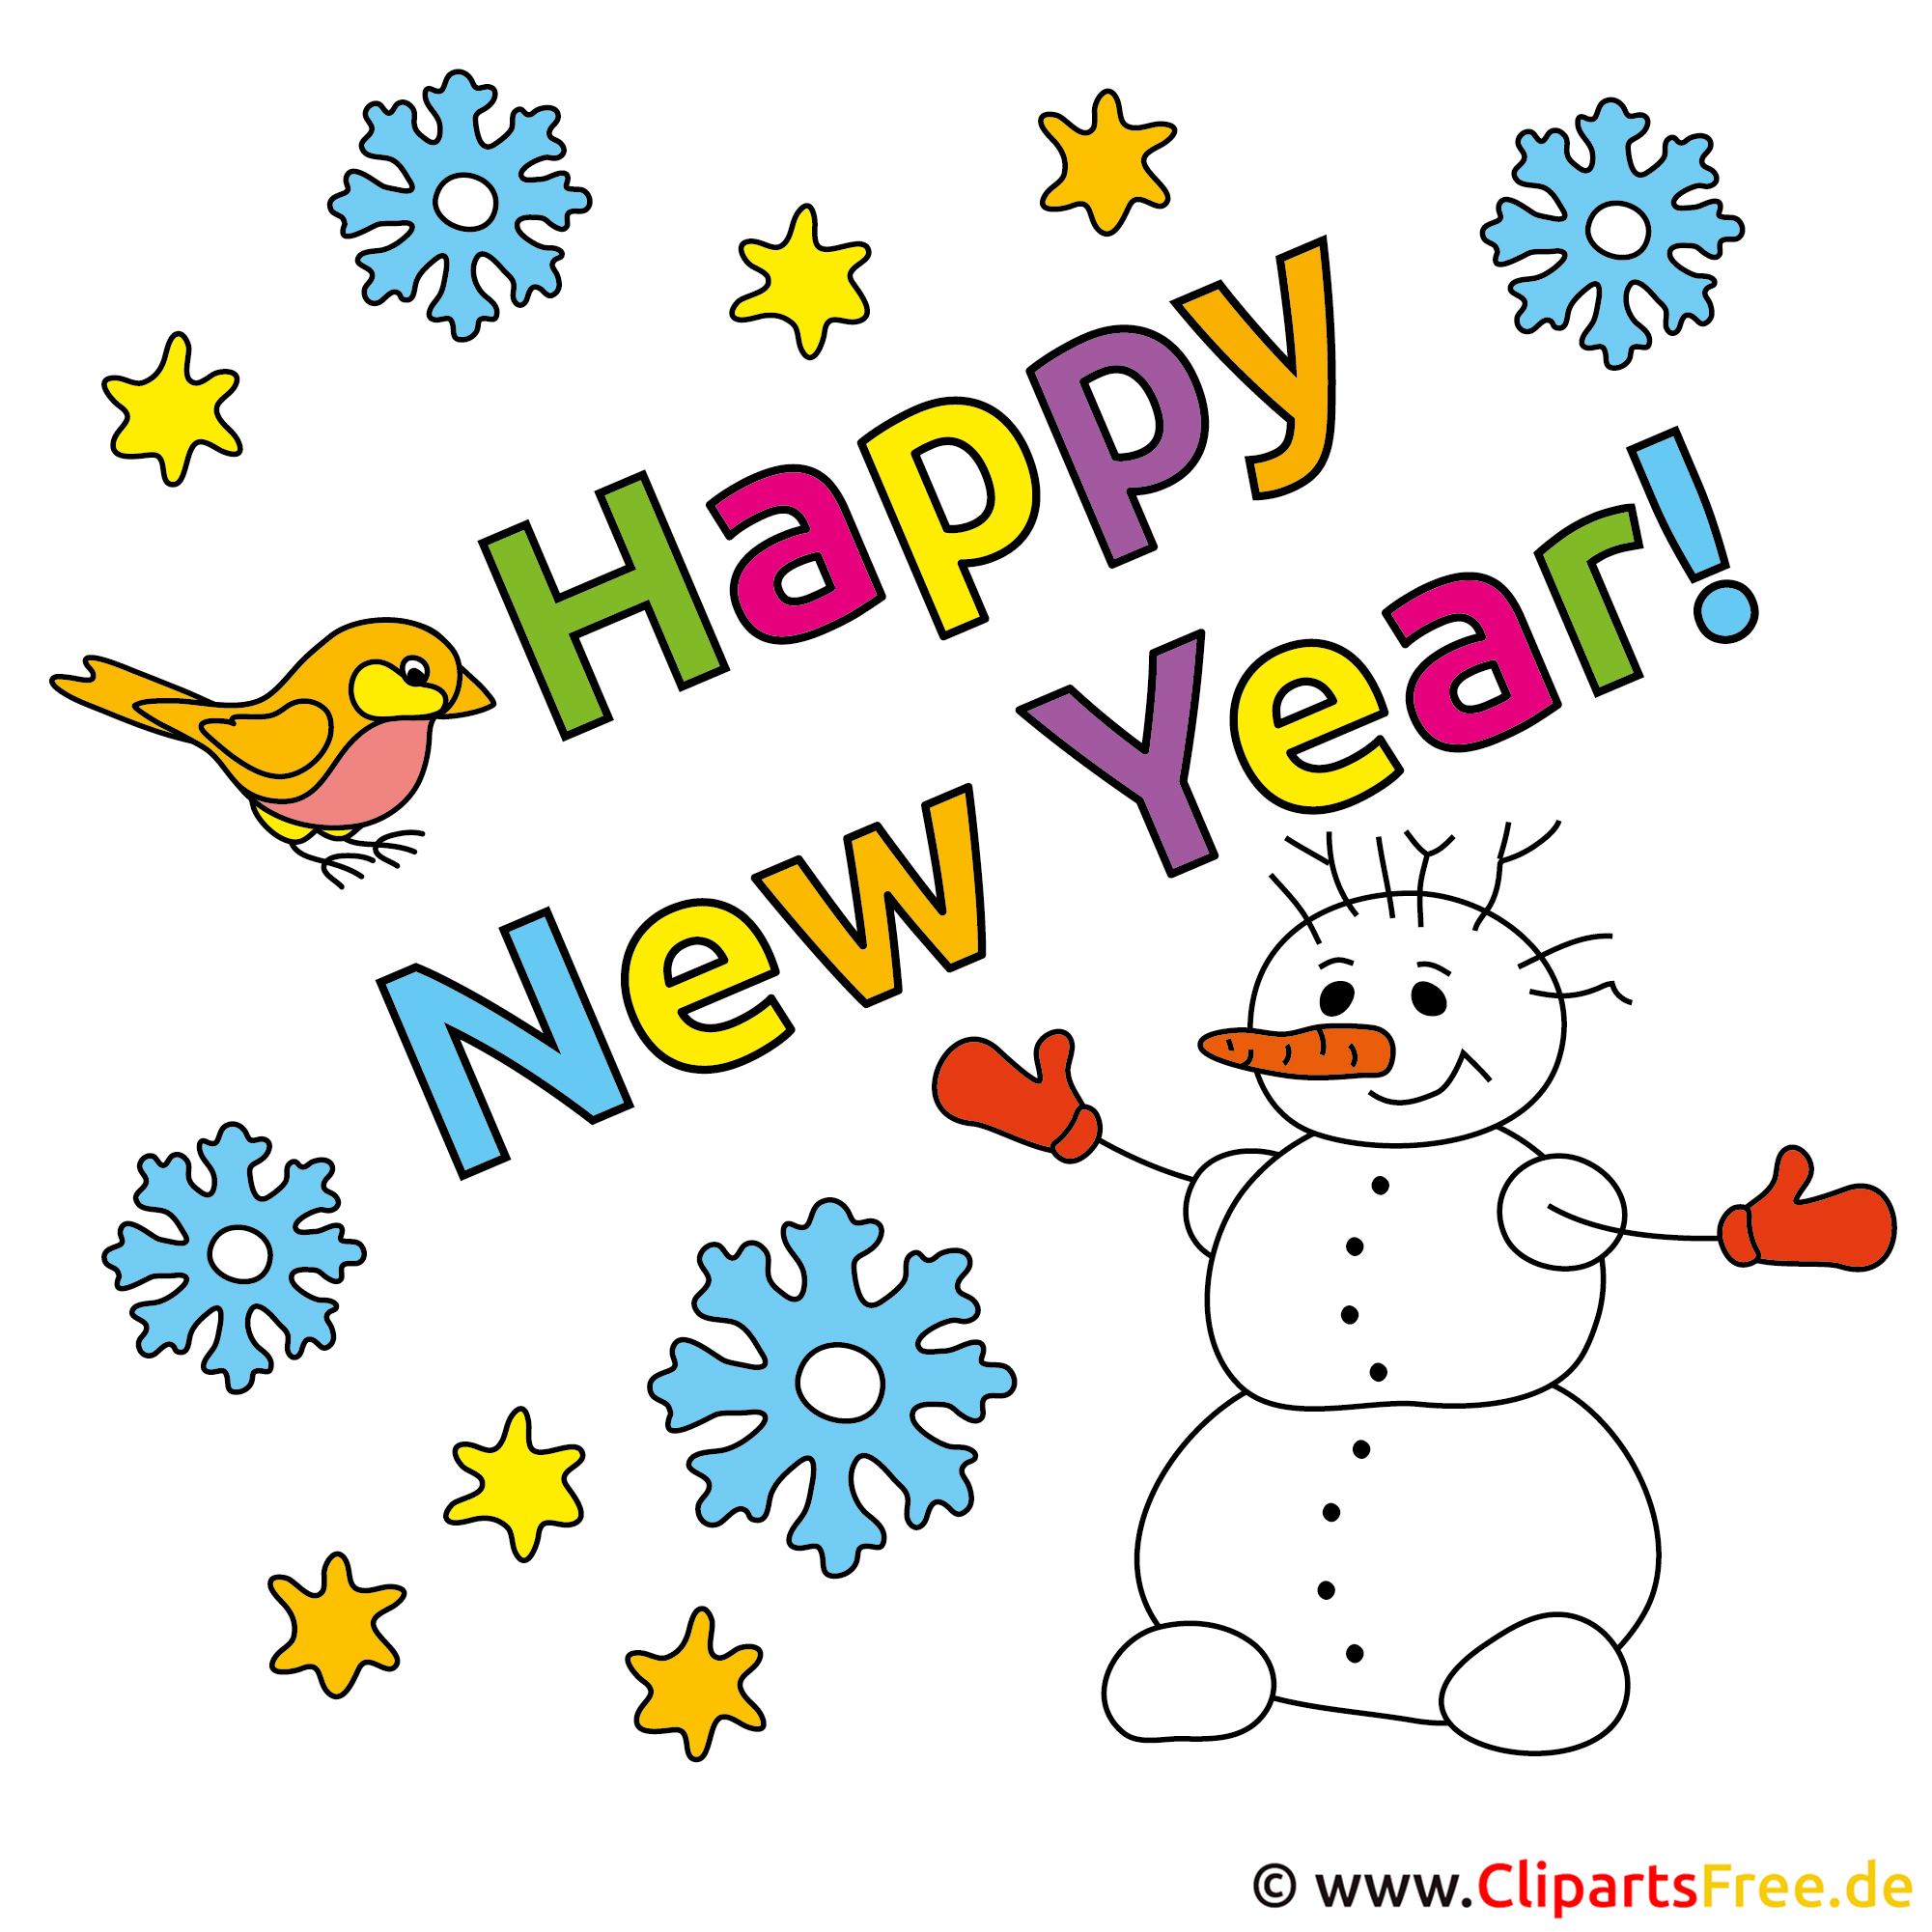 bilder happy new year kostenlos